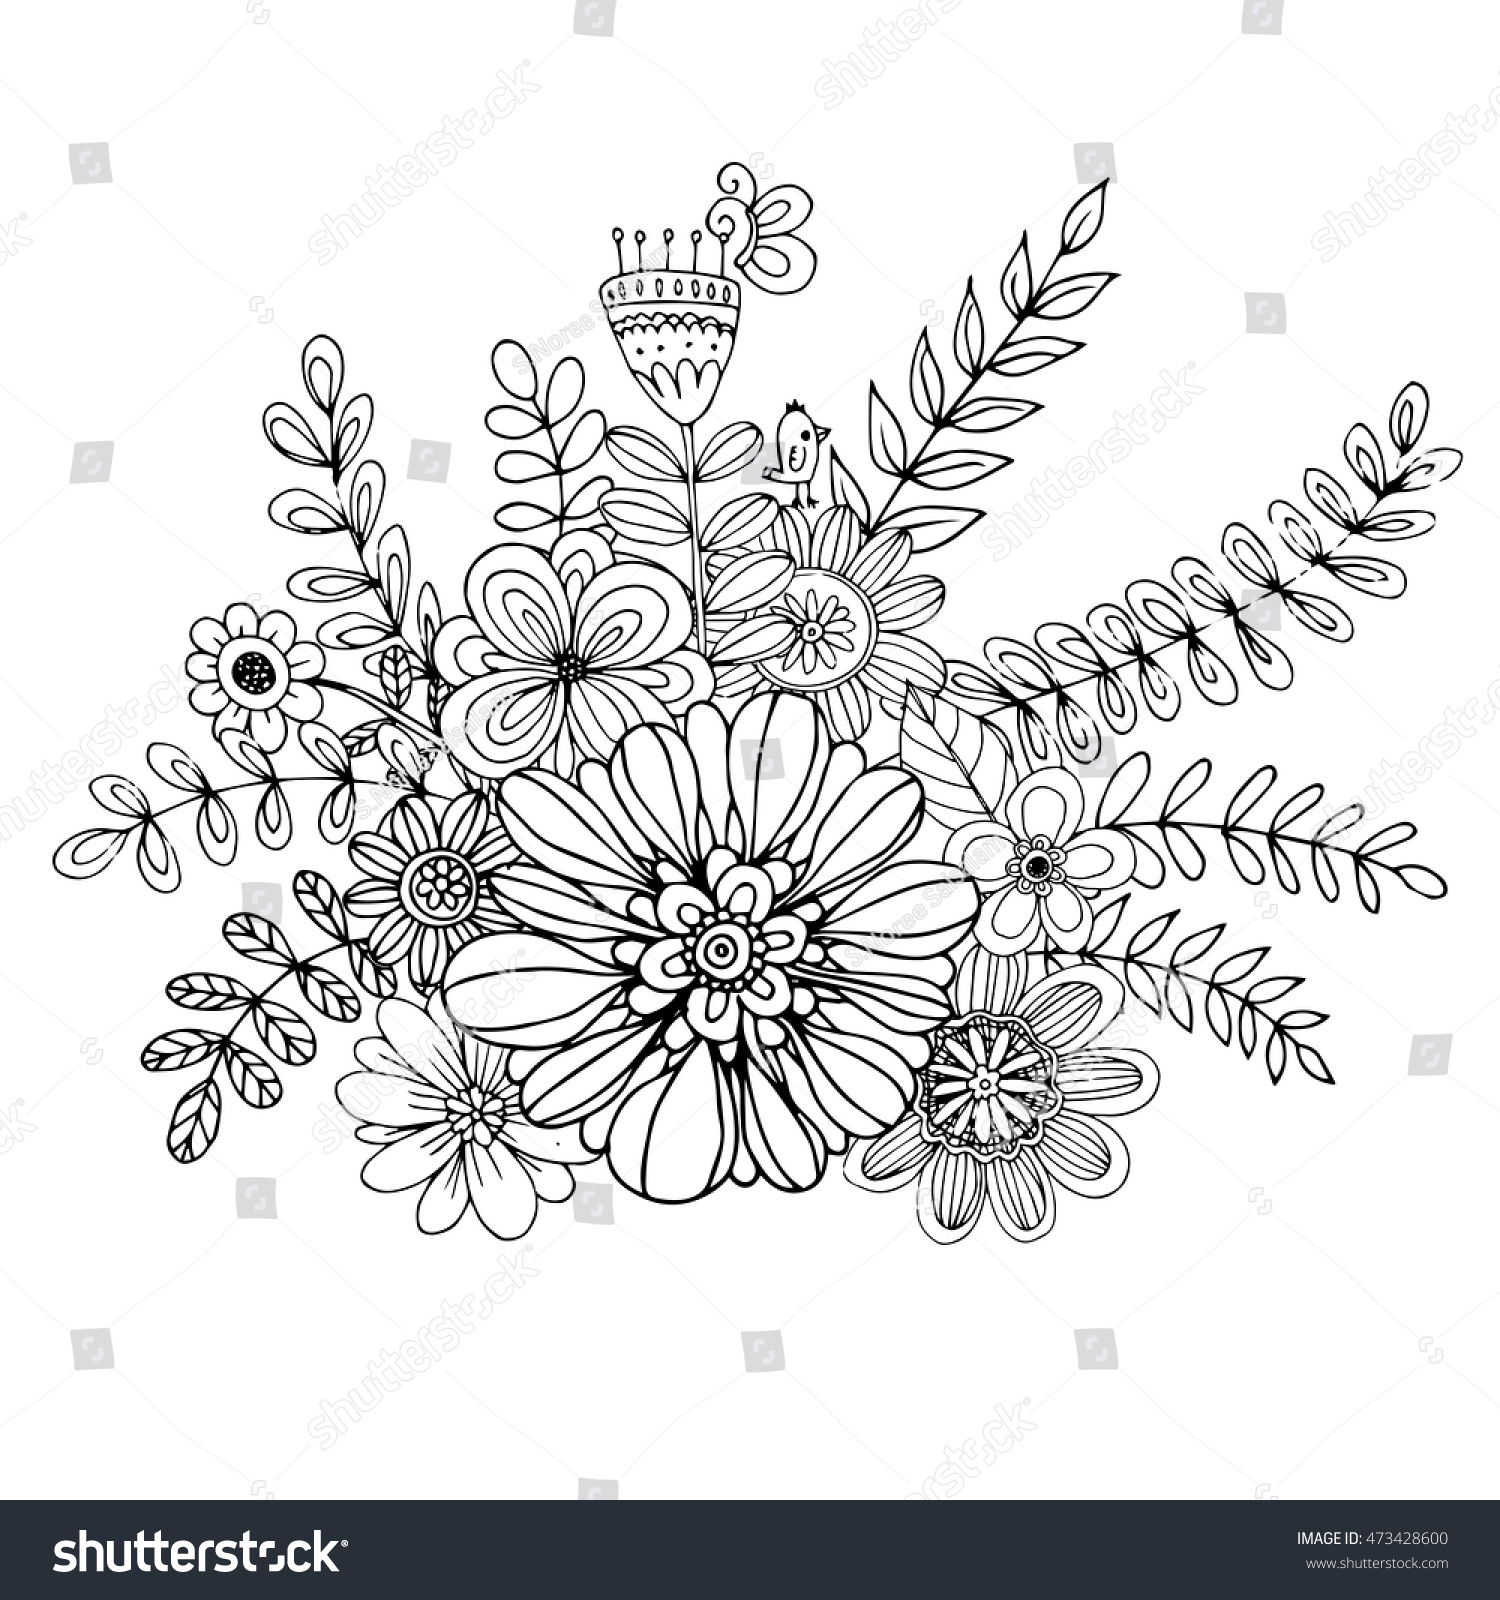 Flower Doodle Drawing Freehand Vector Coloring Stock Vector HD ...